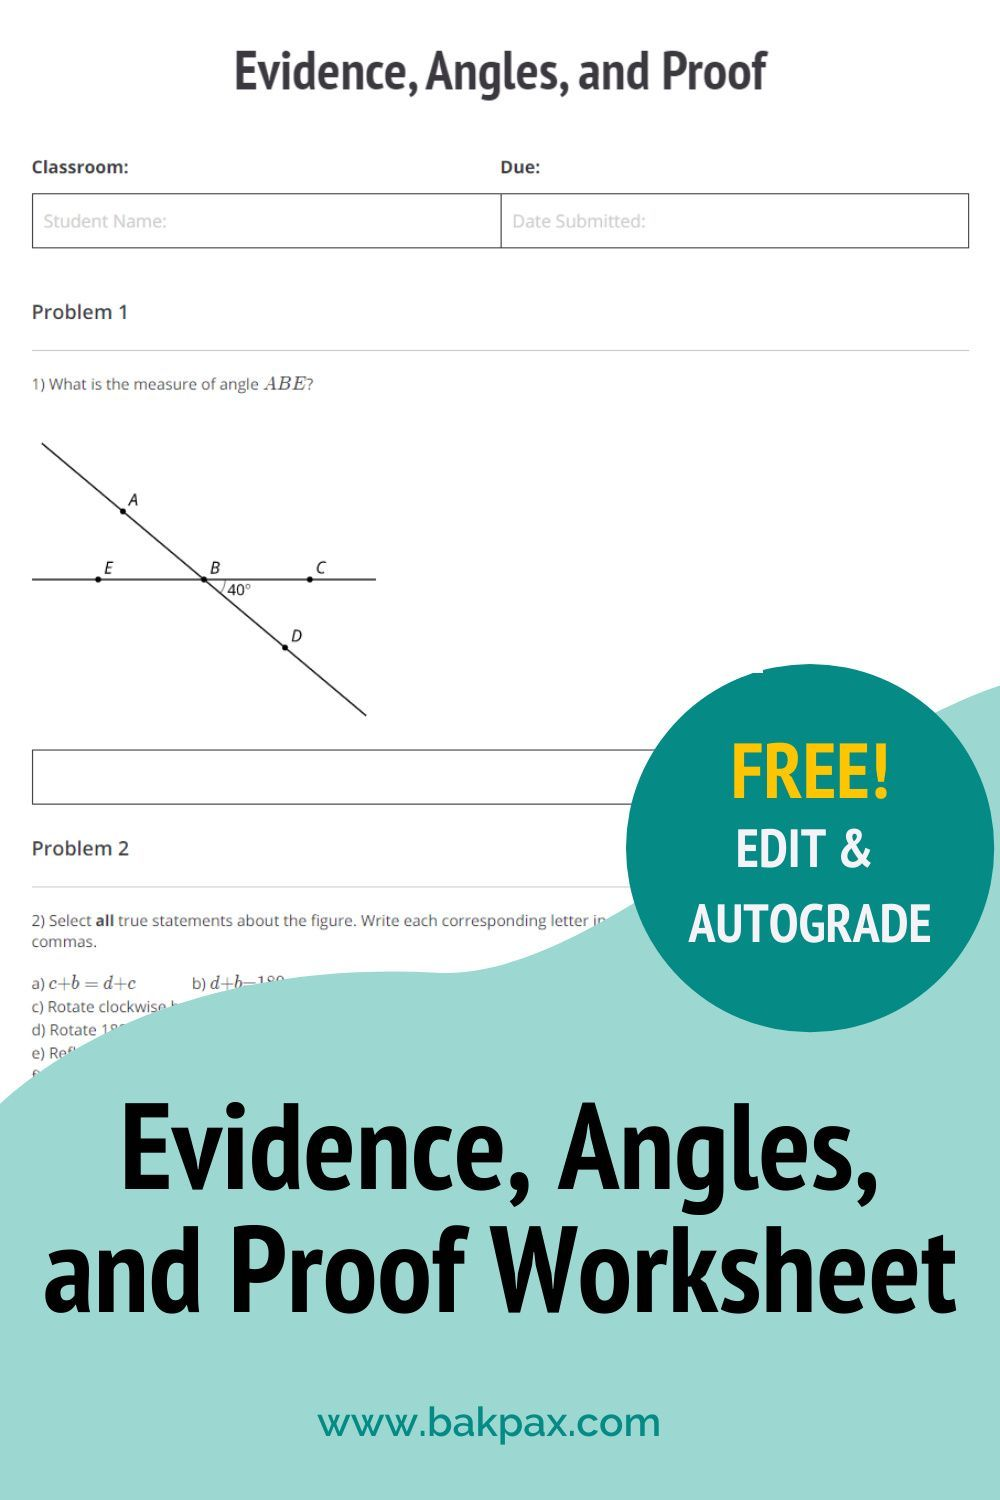 Free Evidence Angles And Proof Geometry Worksheet Geometry Worksheets Geometry Proofs Worksheets